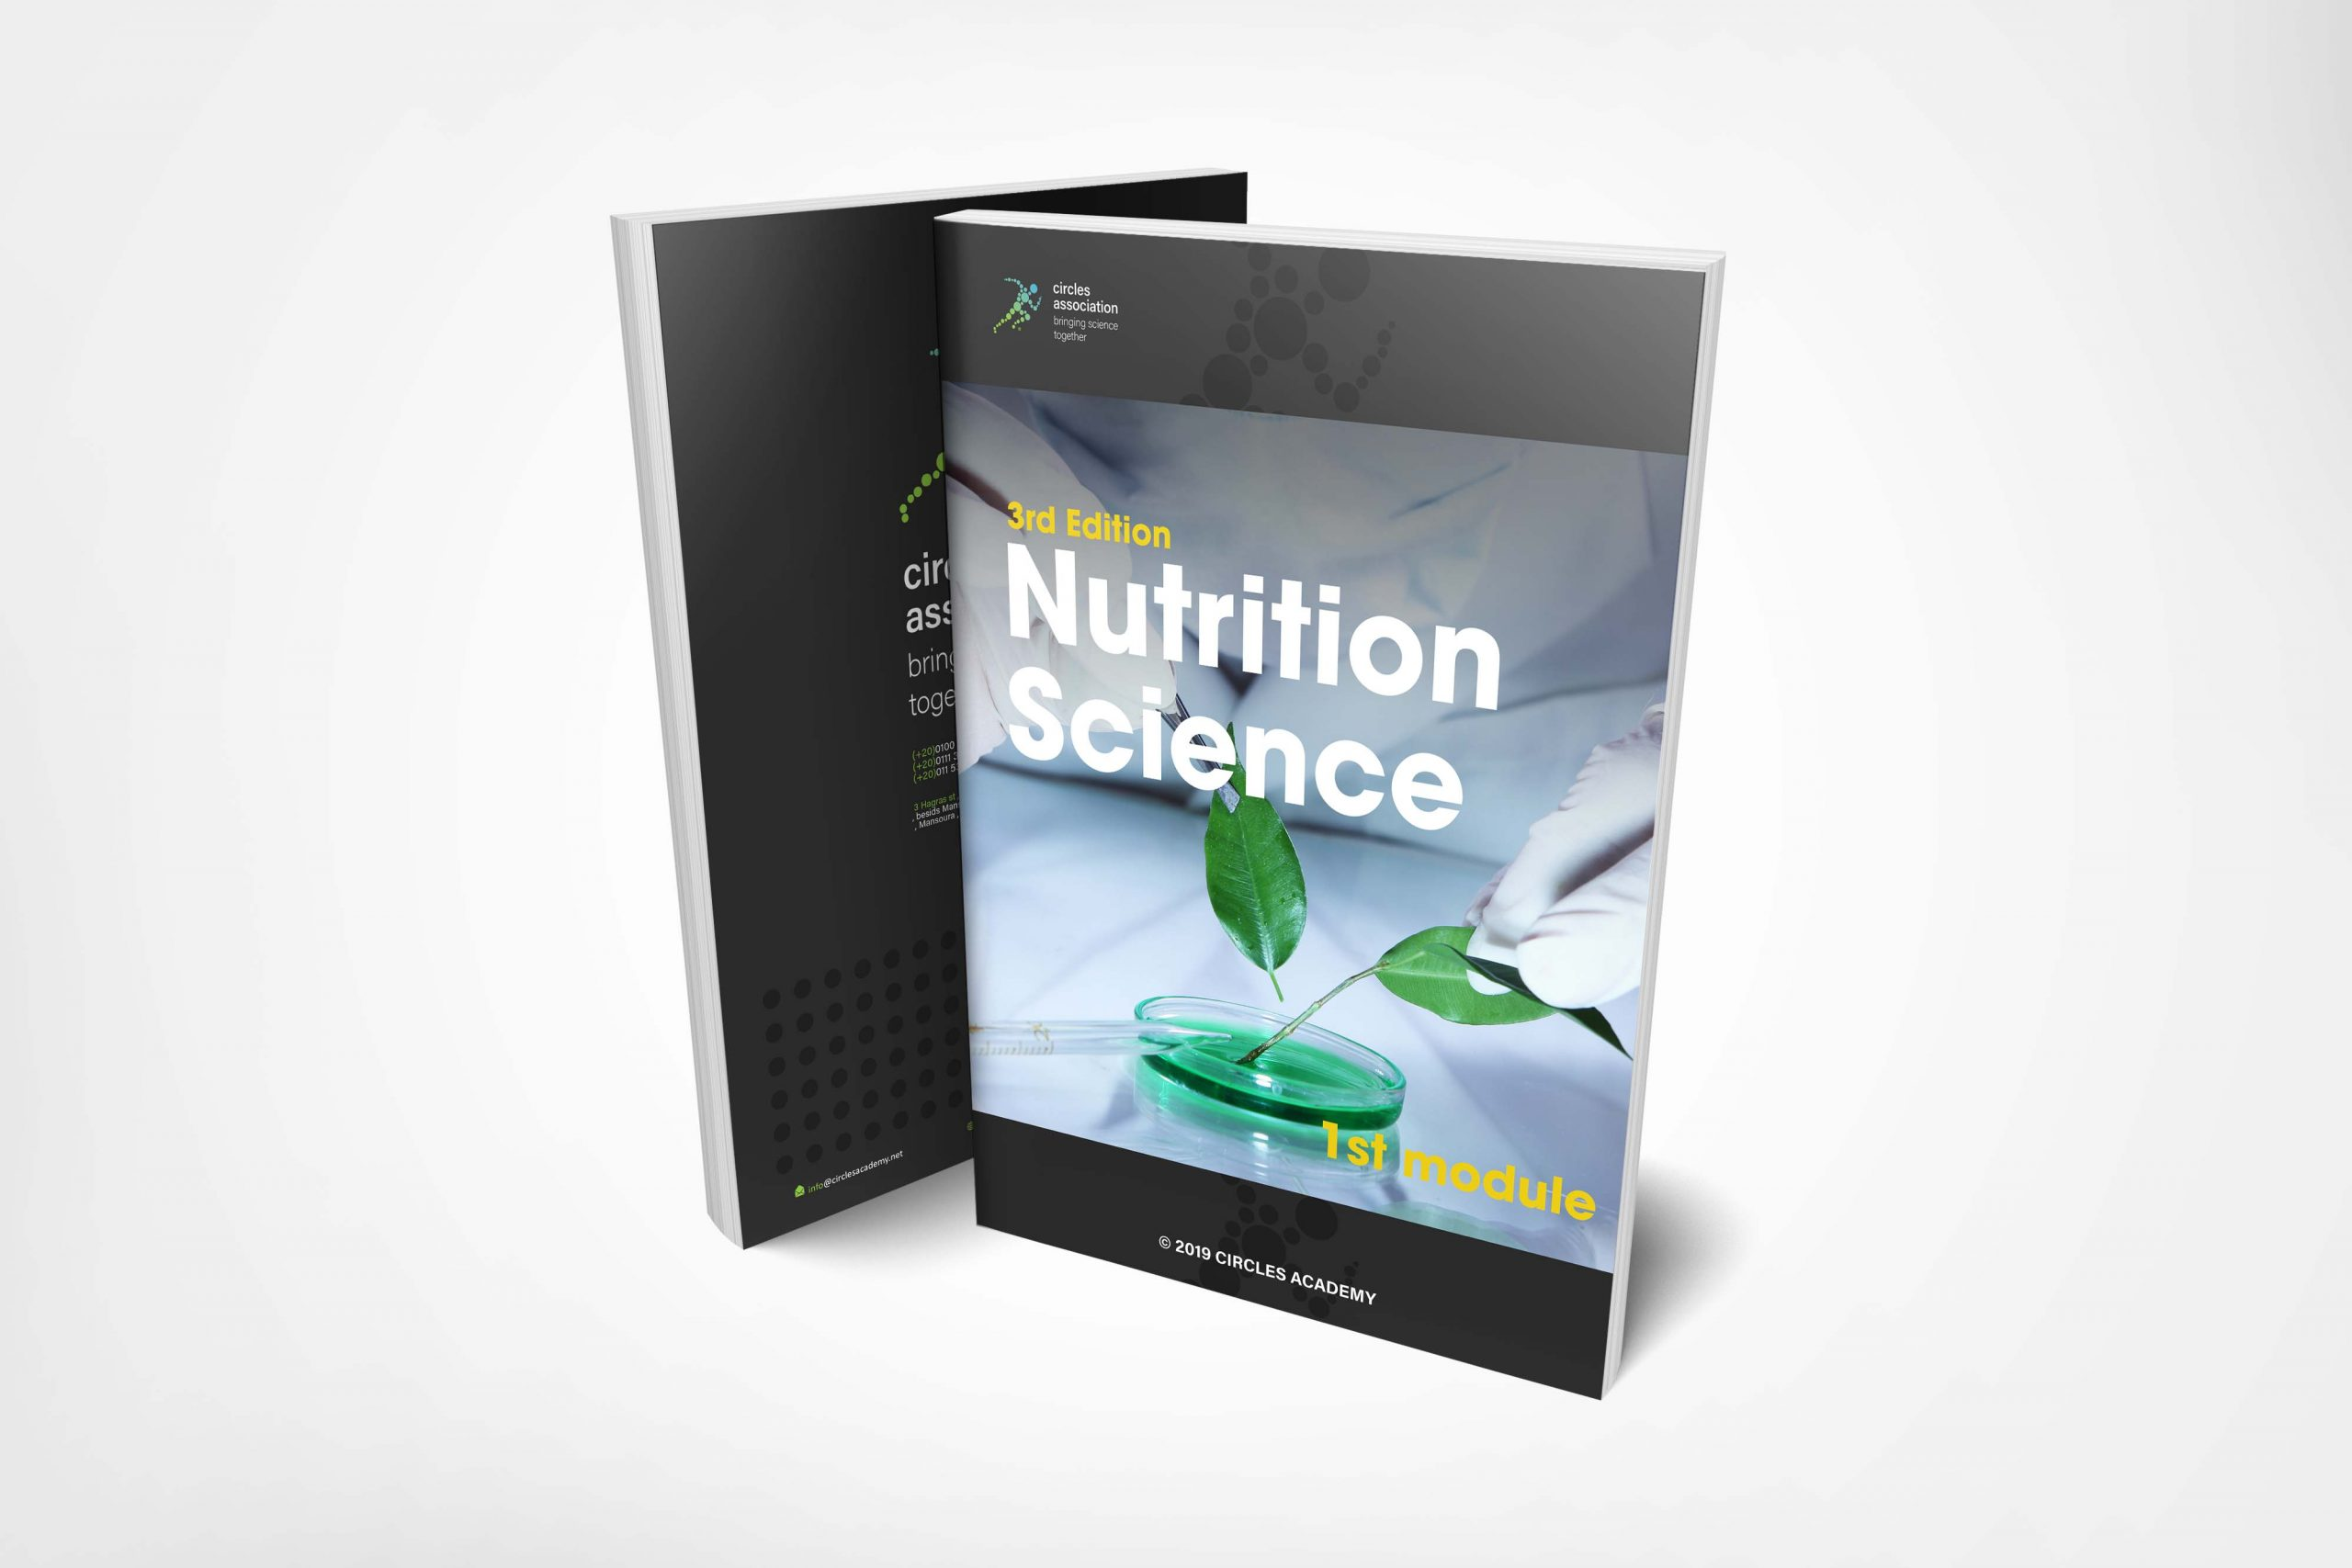 Basic nutrition science 3rd edition